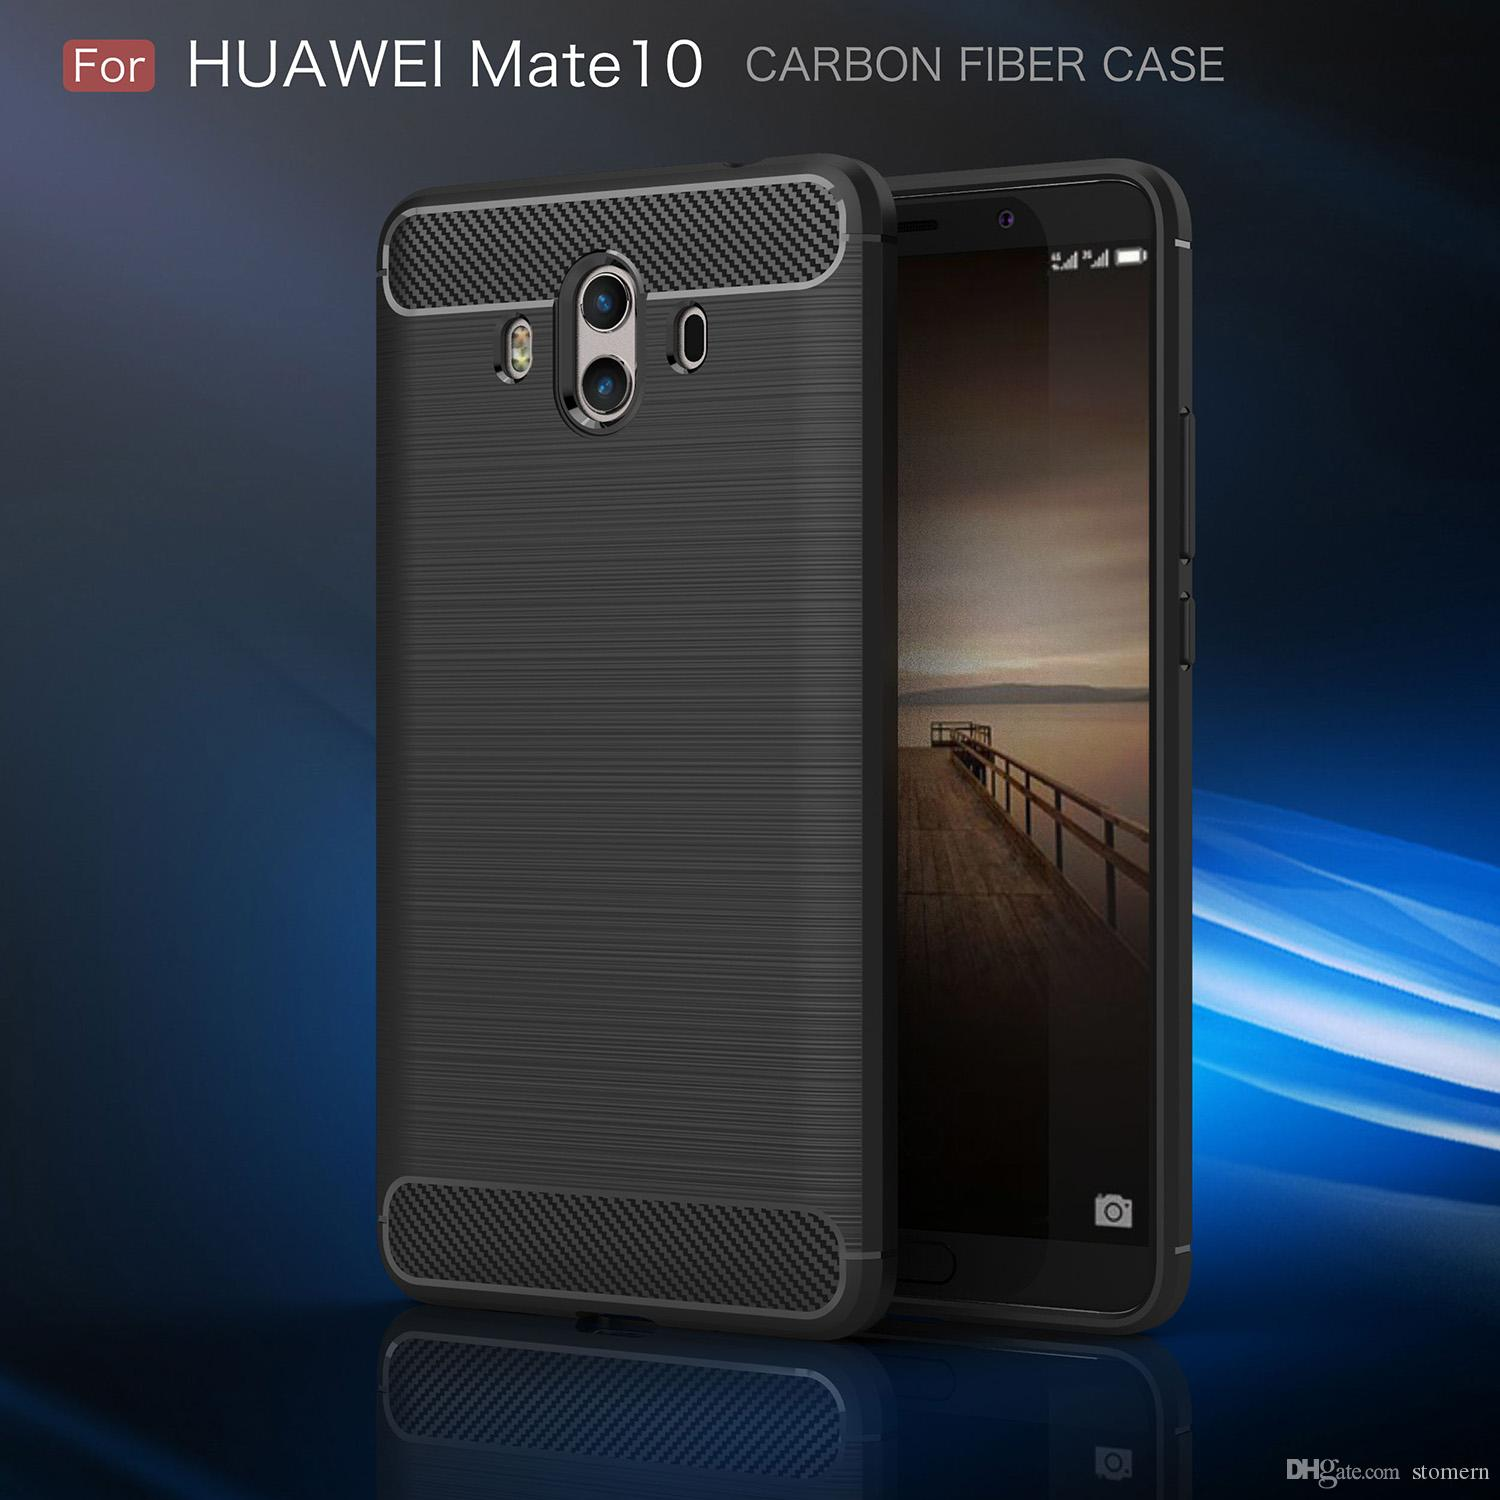 Carbon Fiber Case For Huawei Honor 7x Head 6 Mate 10 Lite V9 Play Mate 10 Pro 9 P9 Lite P8 Brushed Silicone Soft Rubber Back Cover Phone Covers Make Your